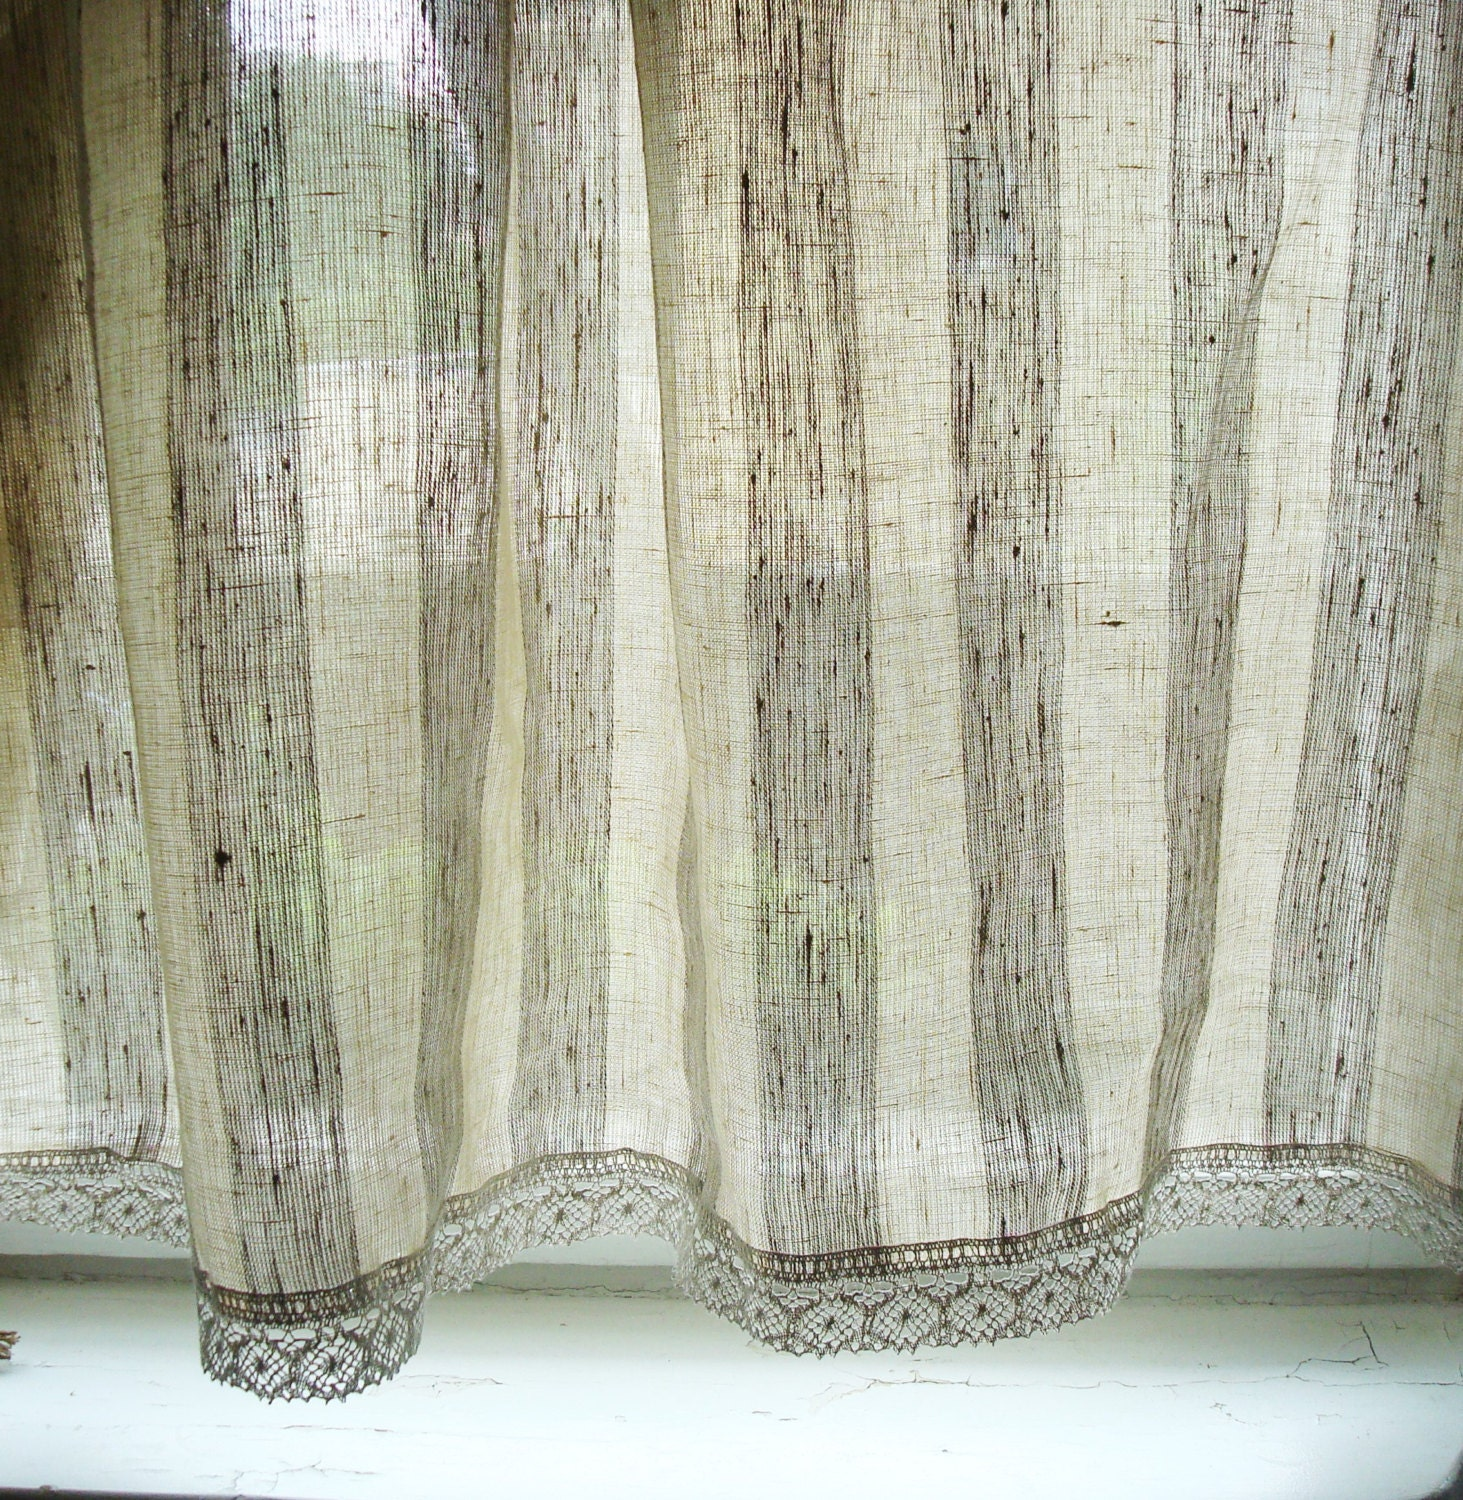 unlined retro french kitchen richloom design linen cafe vintage tiers product bird curtains